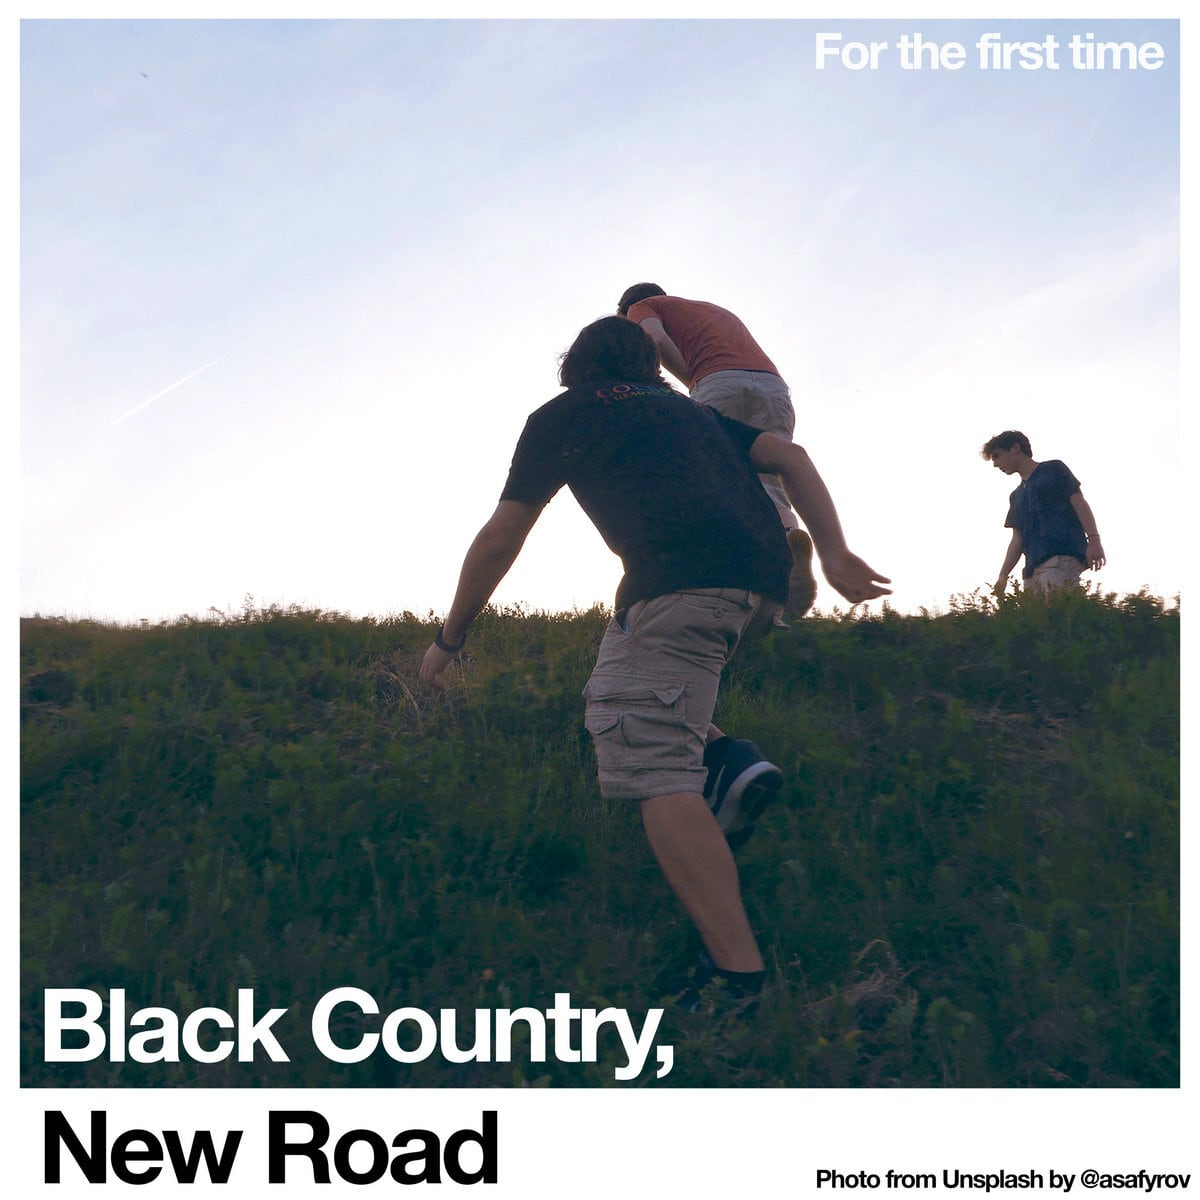 Black Country, New Road / For the first time(Ltd White LP)